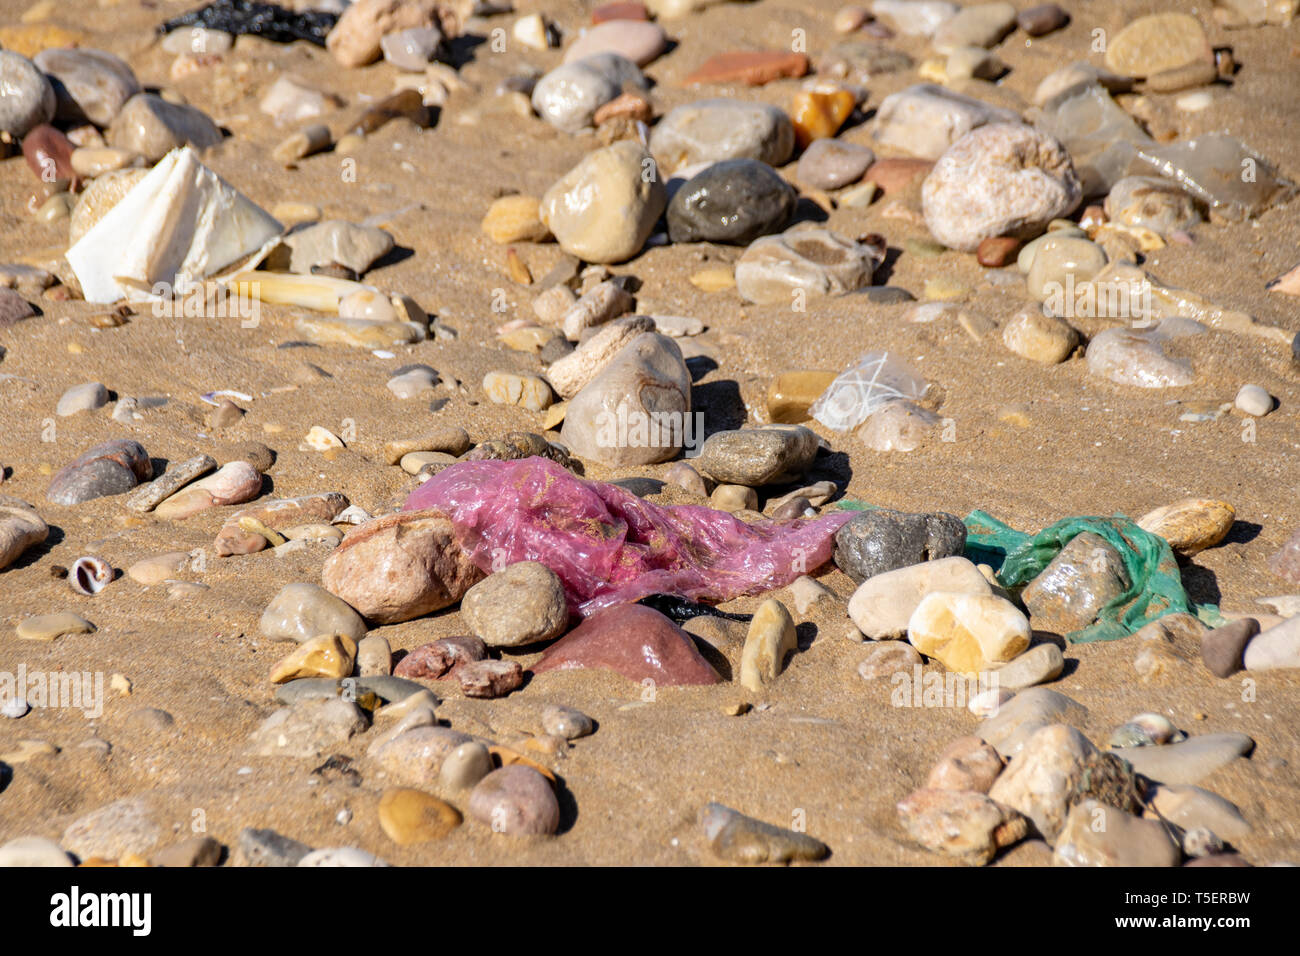 Plastic bags washed up from the Atlantic Ocean sand beach shoreline in Agadir, Morocco Stock Photo